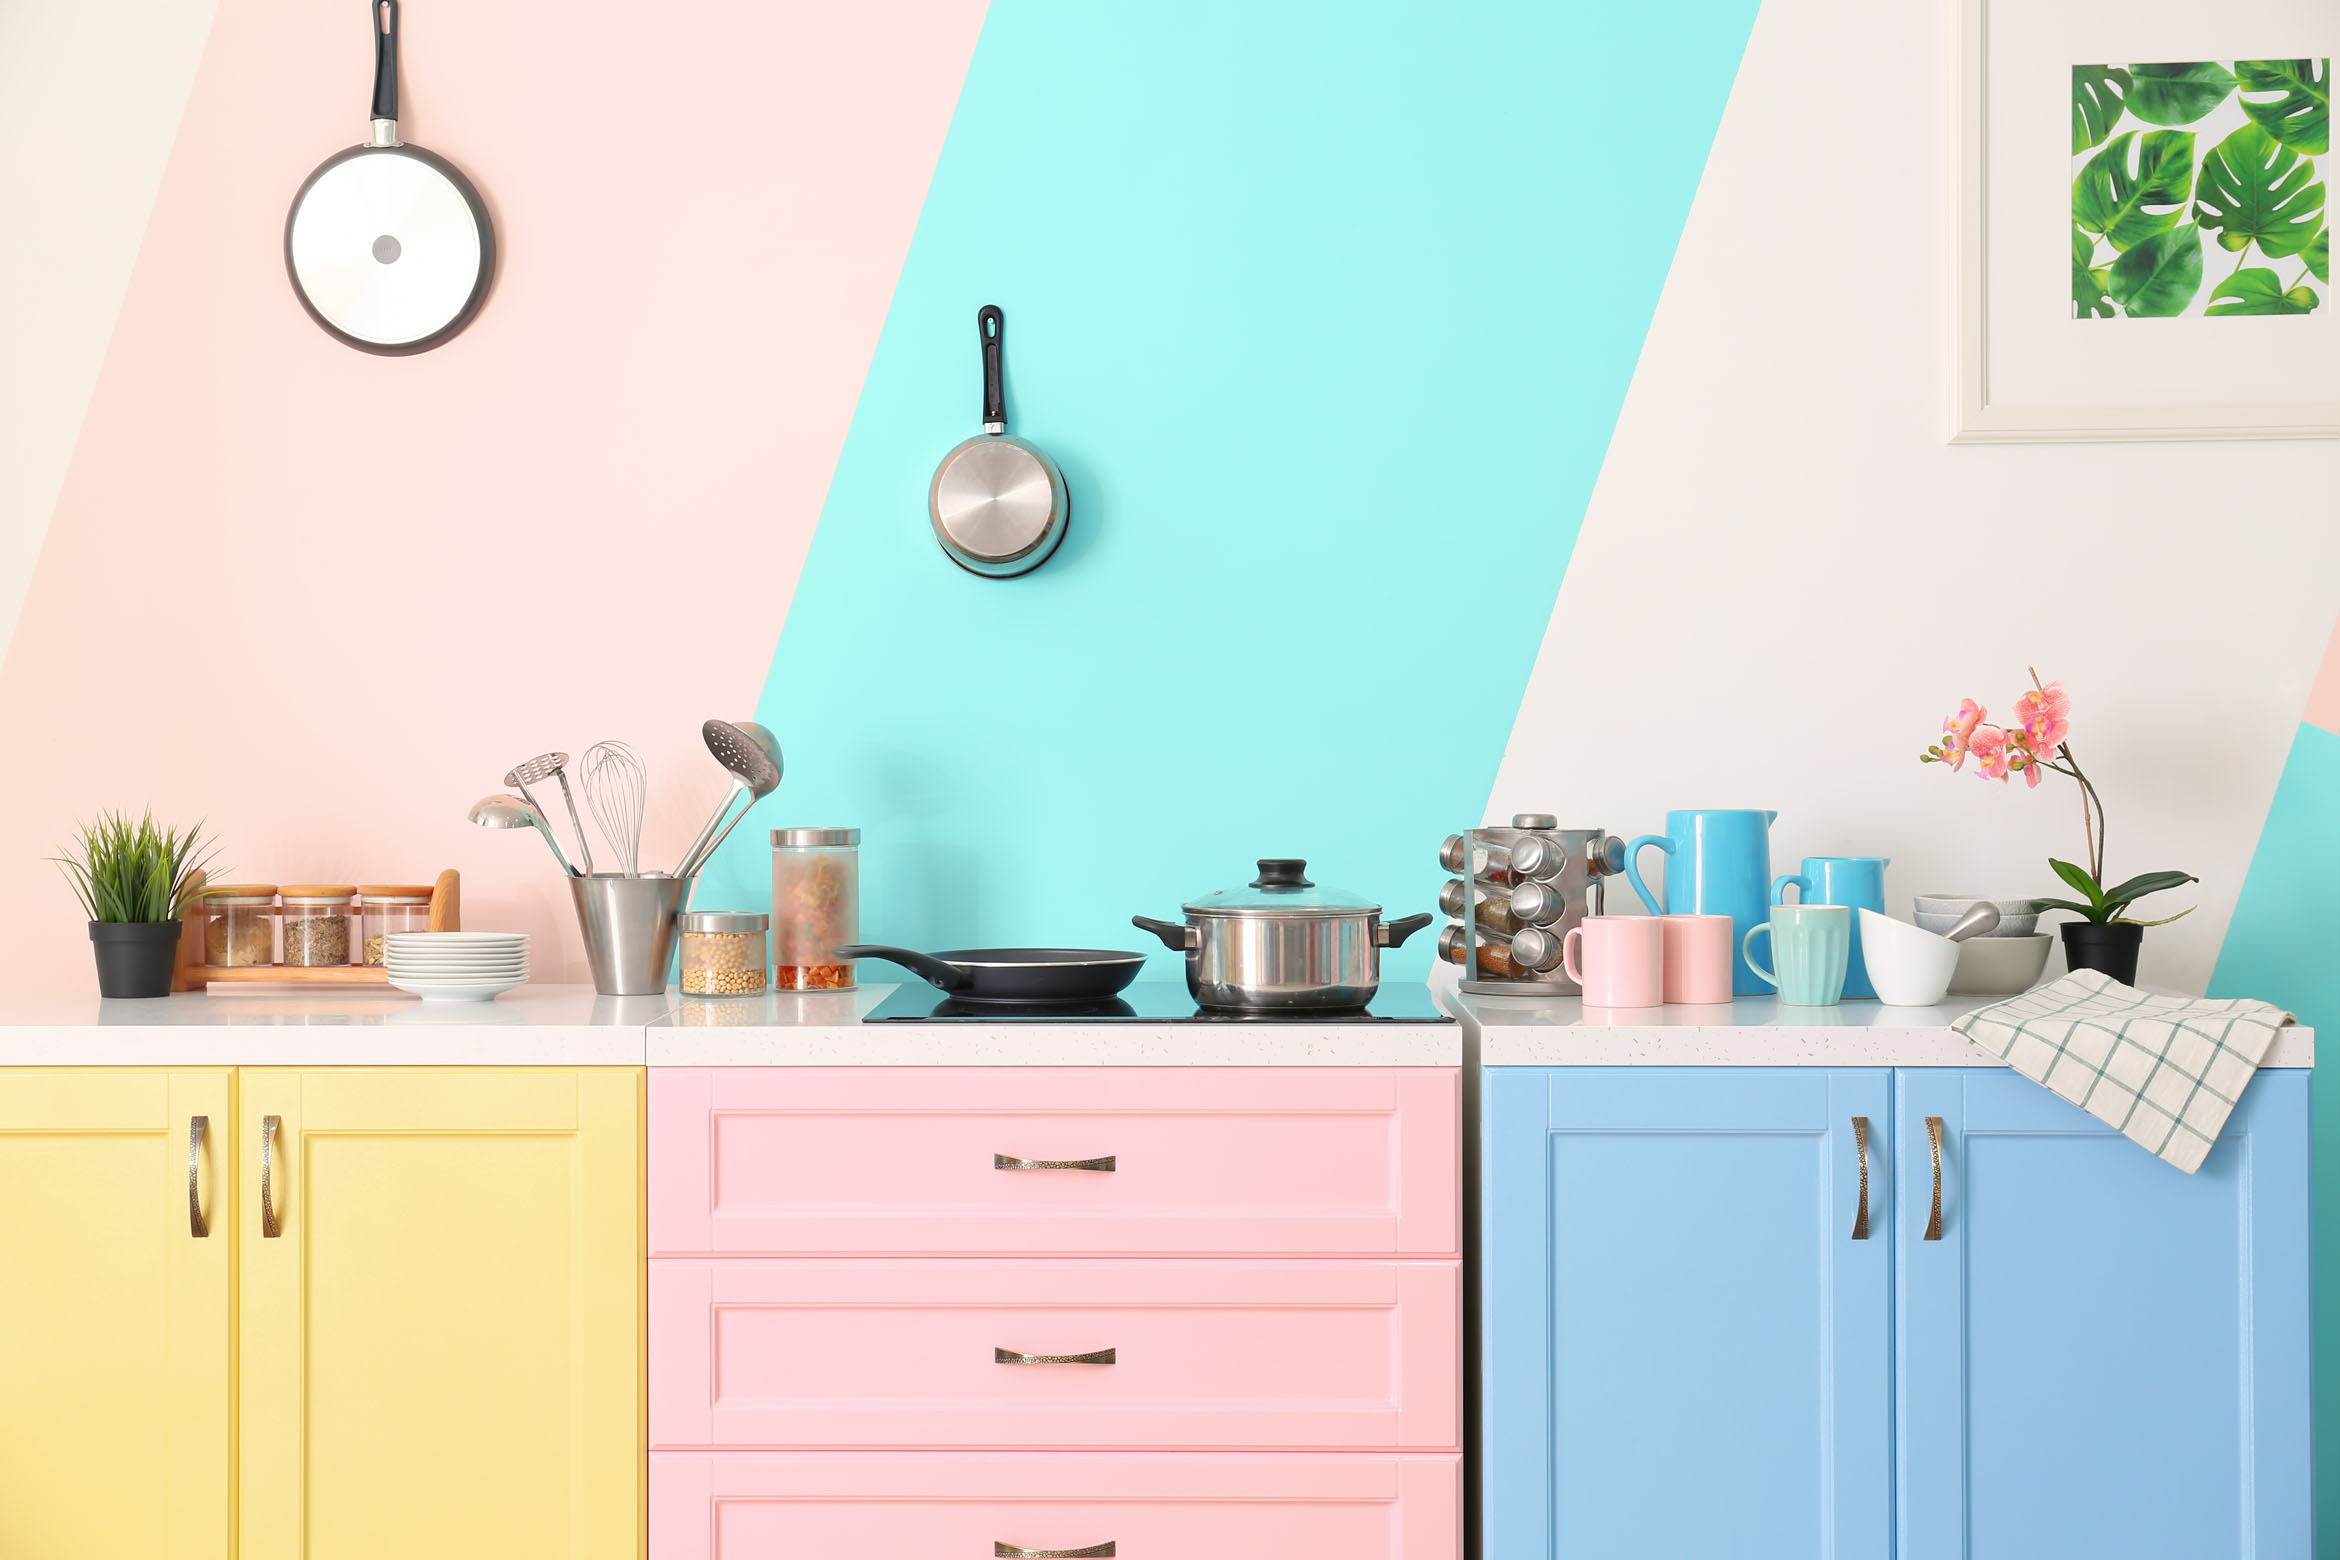 Tips for getting our kitchen sale ready - mudpiefridays.com